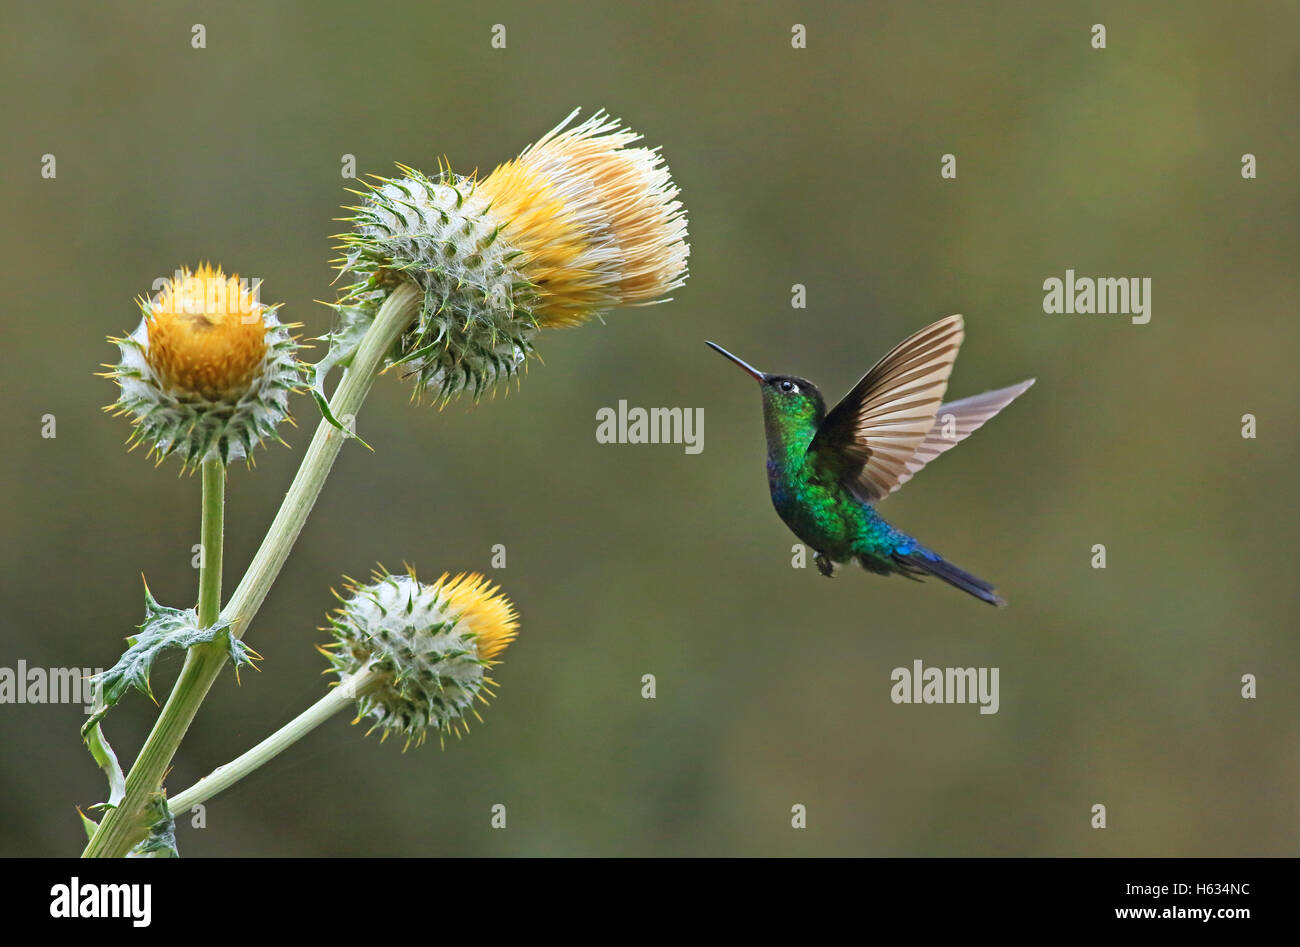 Green-crowned Brilliant Hummingbird feeding at giant thistle (Cirsium subcoriaceum), Cerro de la Muerte, Costa Rica. - Stock Image